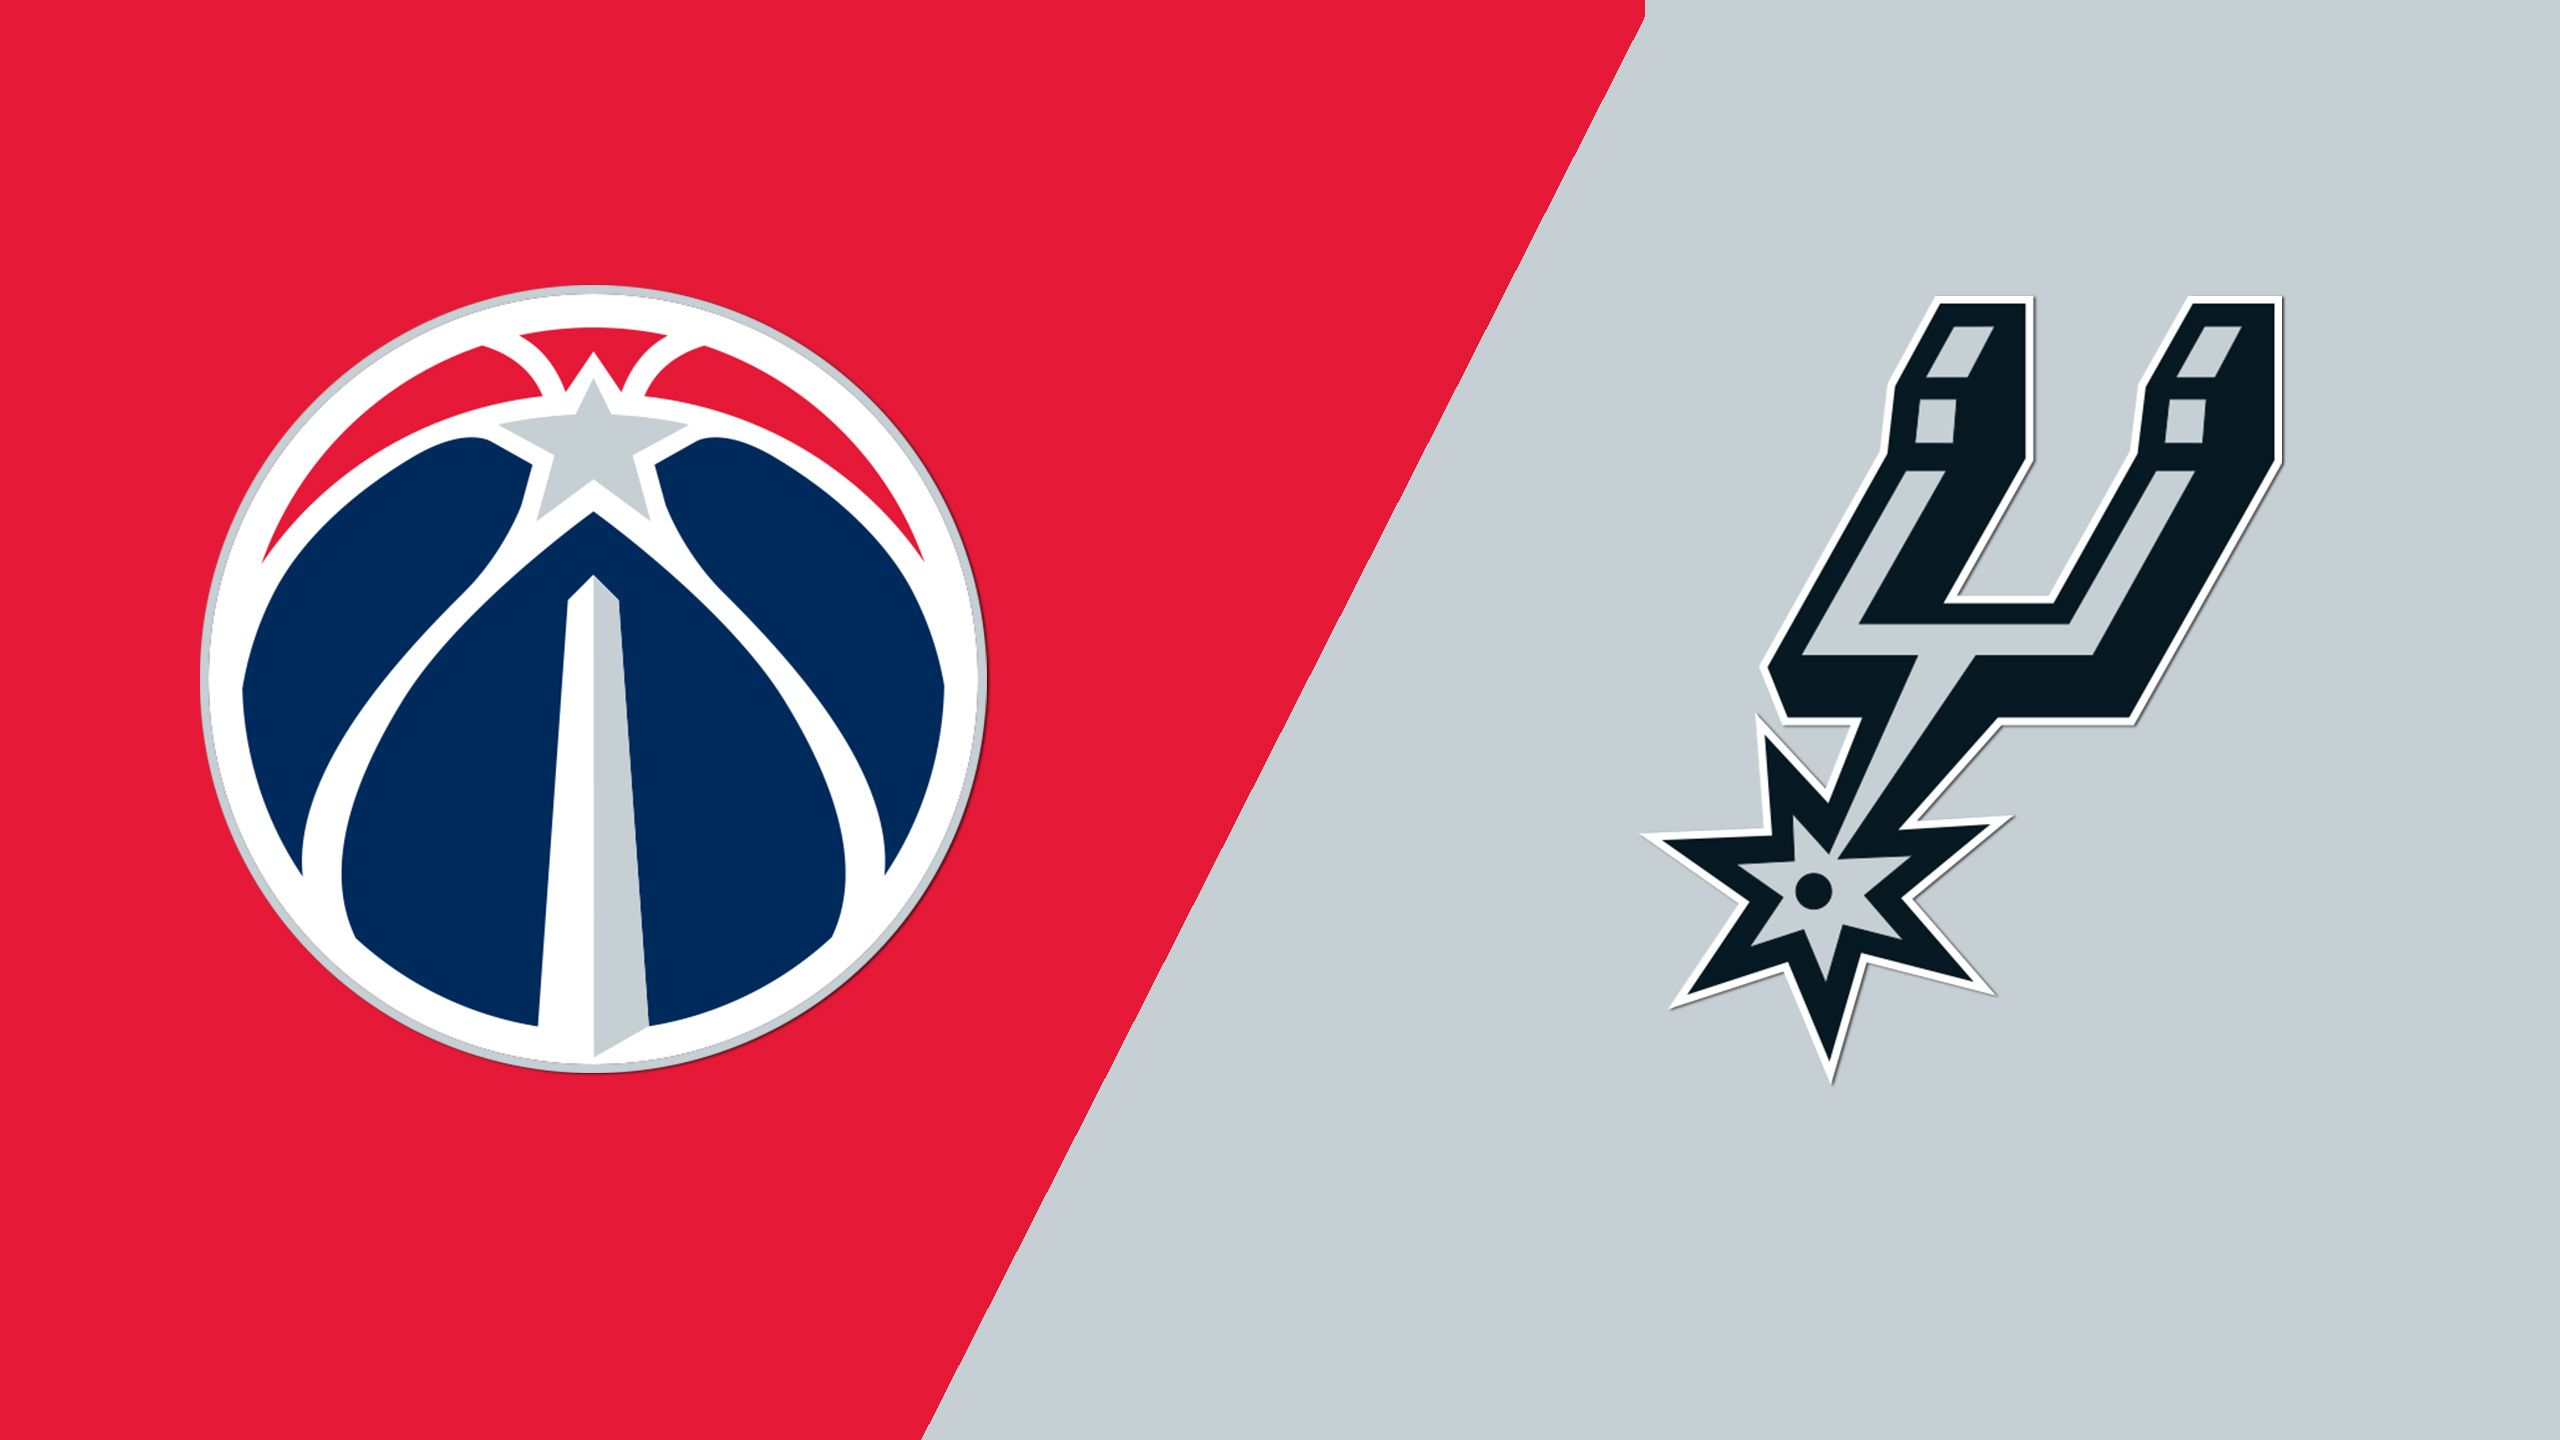 In Spanish - Washington Wizards vs. San Antonio Spurs